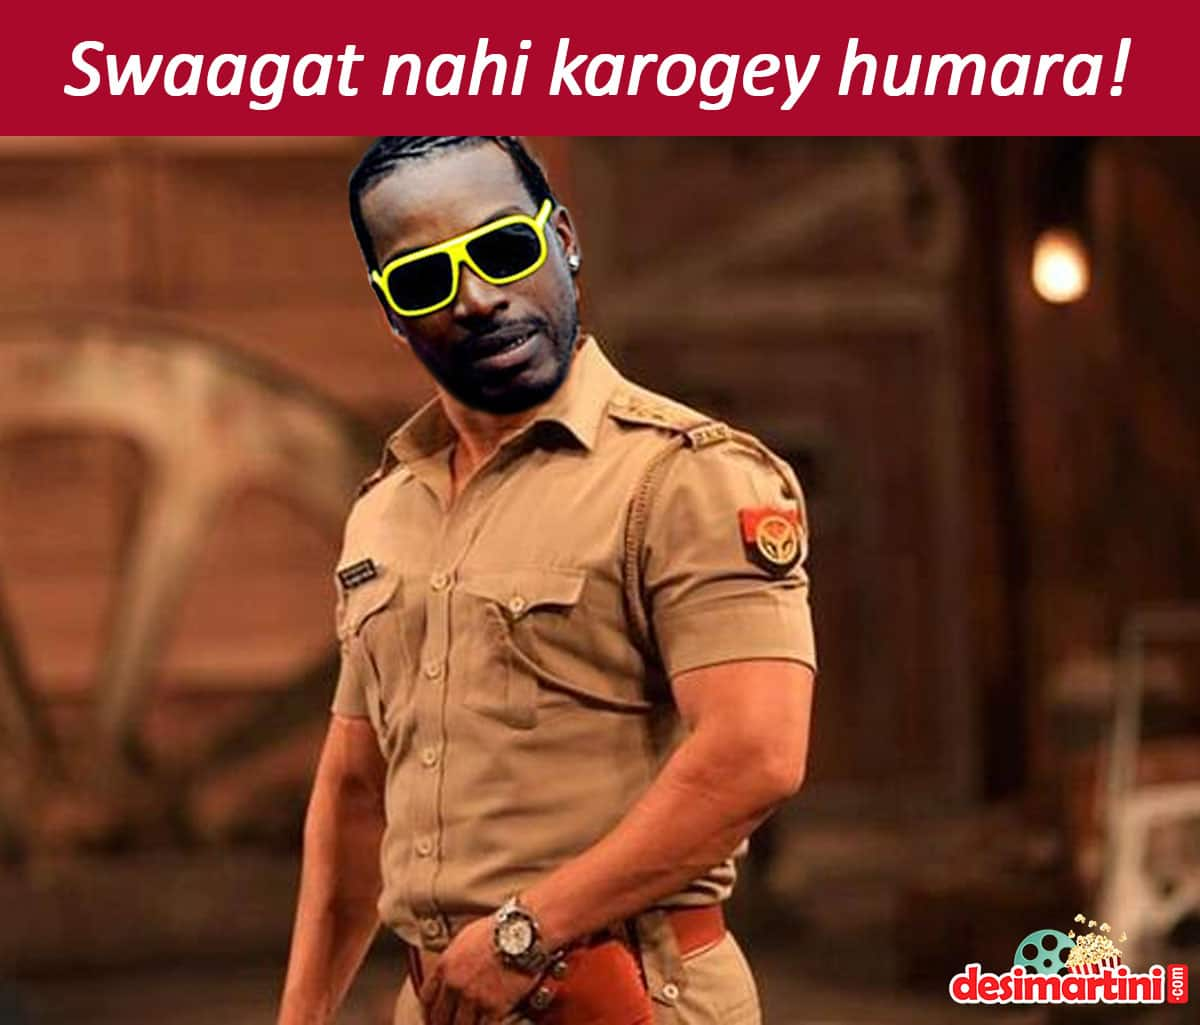 8 IPL Memes That Bring Out The Most Whacky Bollywood Touch In Them